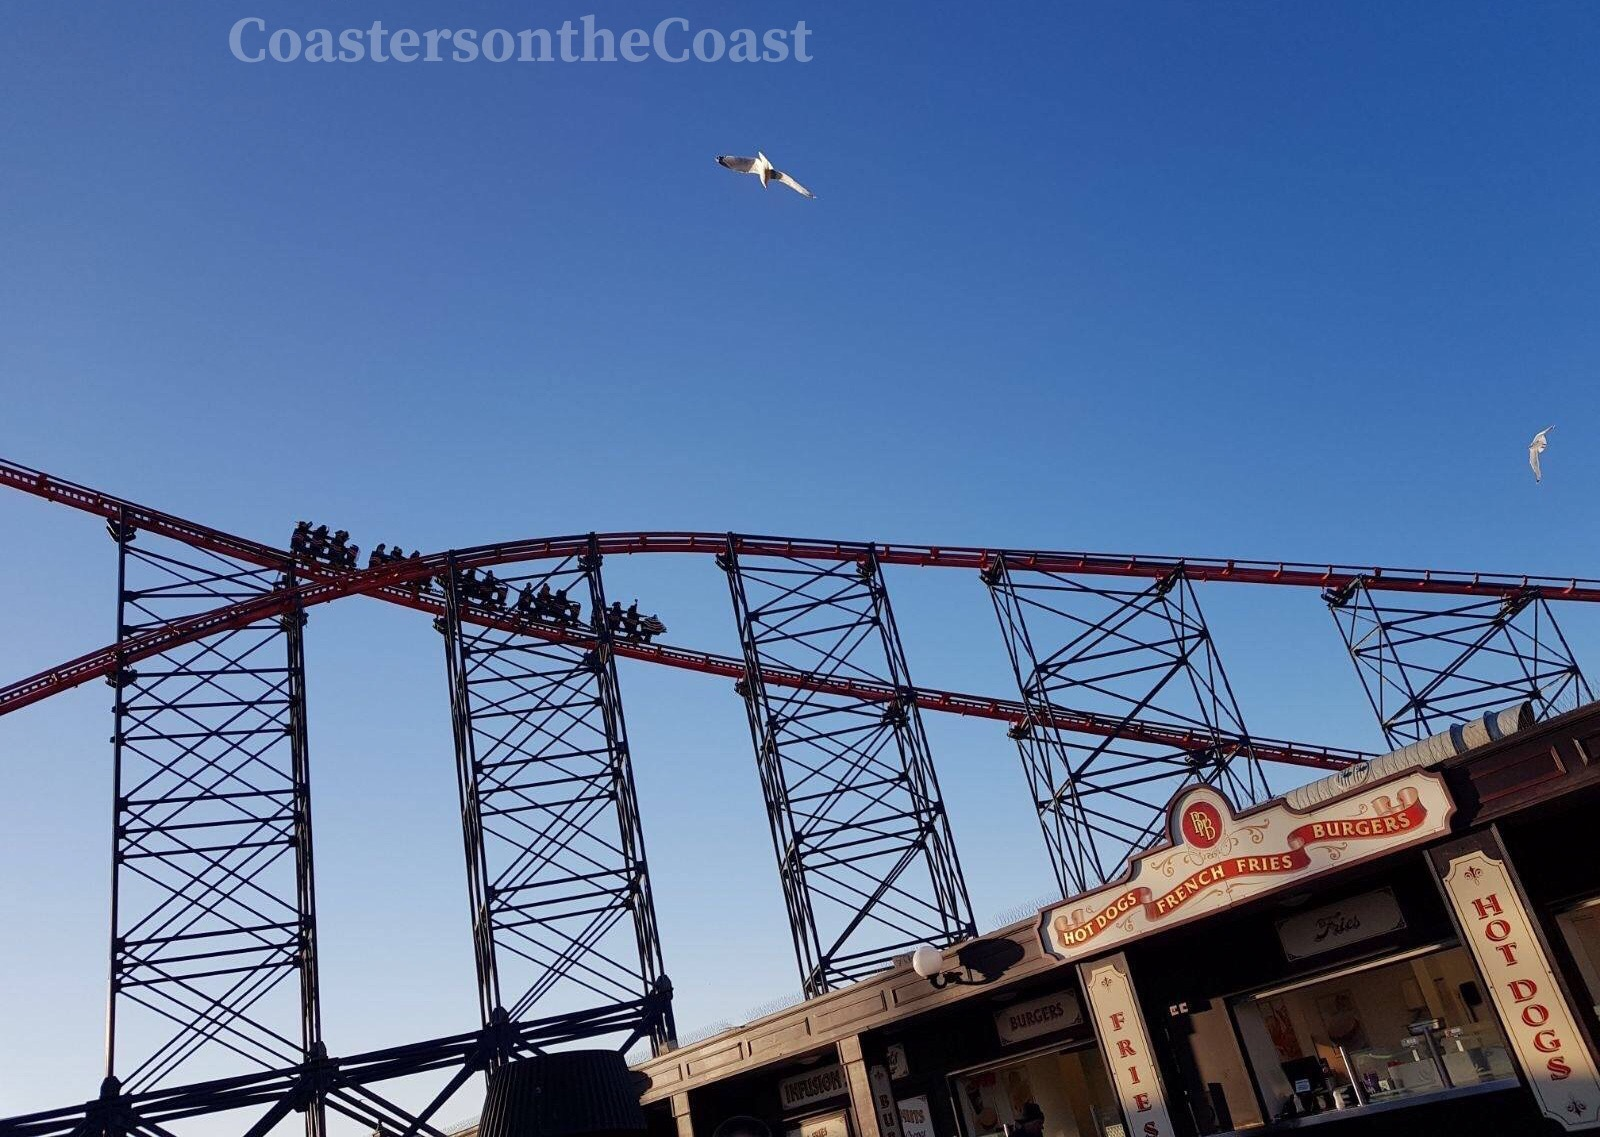 Rollercoaster Fears: Starting Off Big or Small..